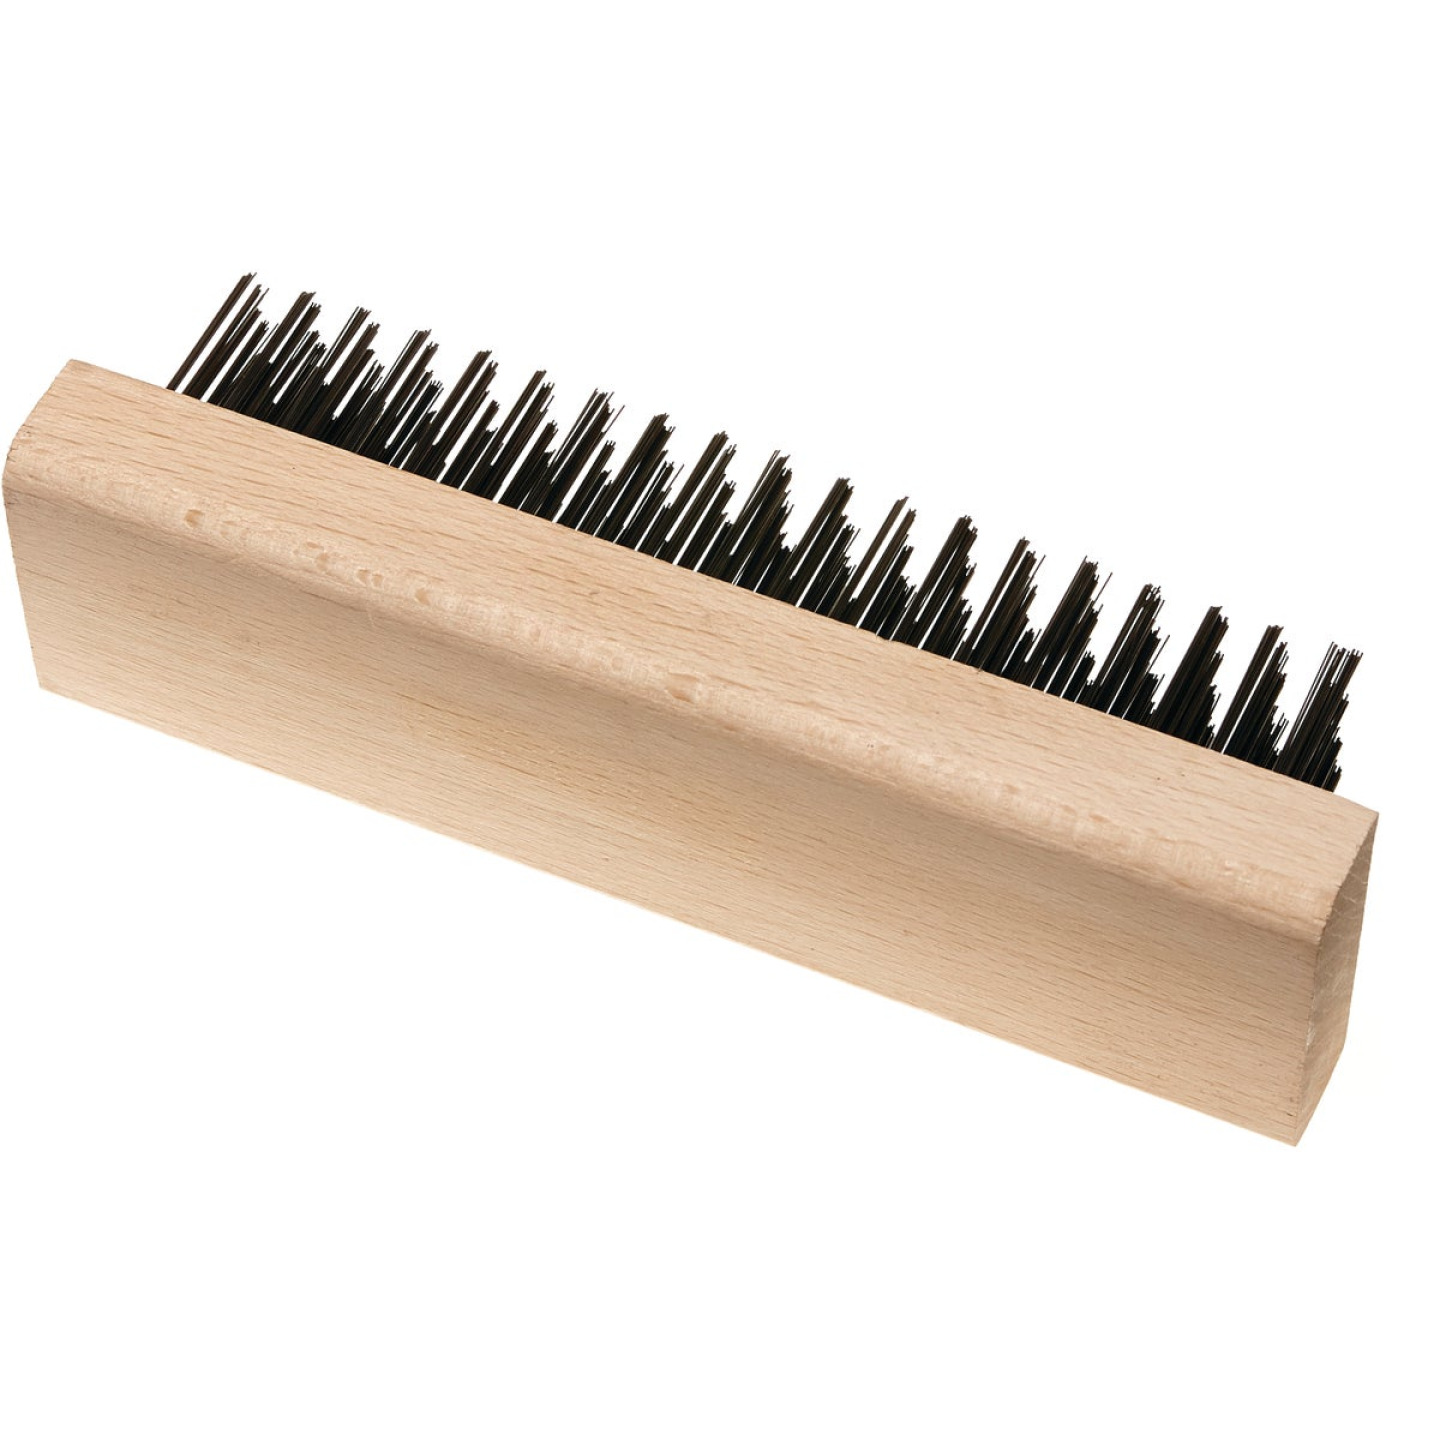 Best Look Wood Block Wire Brush Image 1